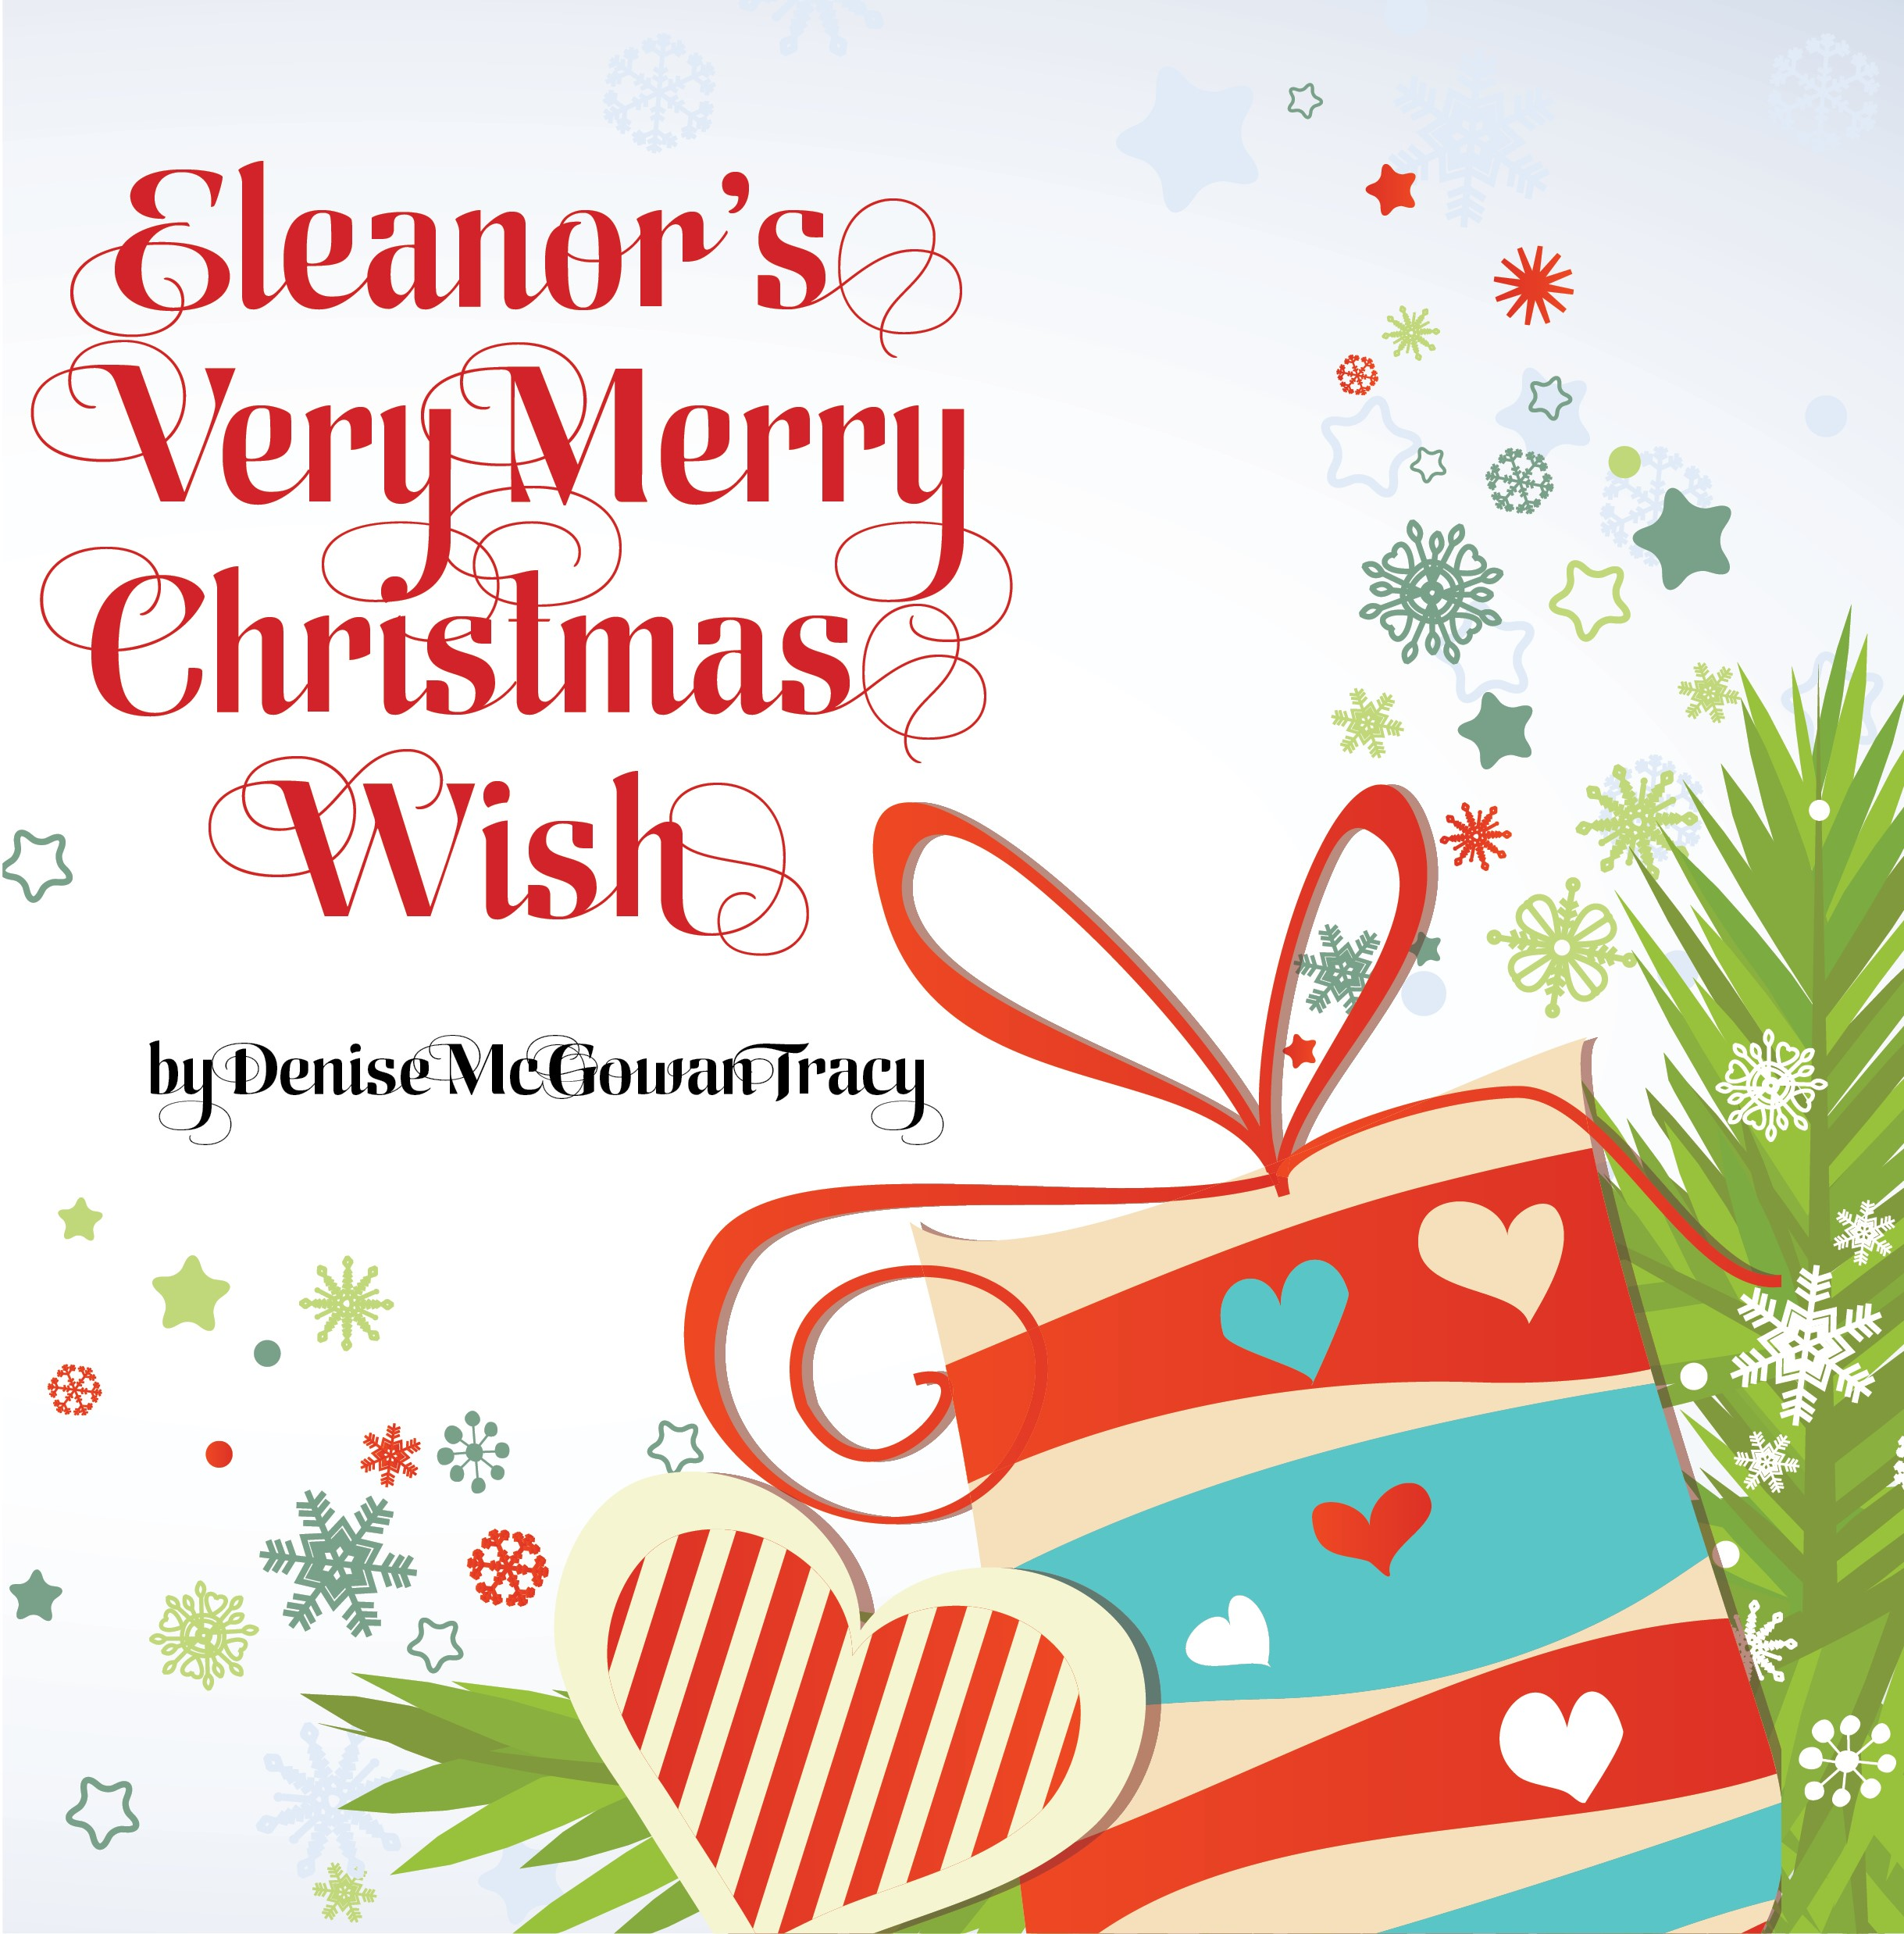 Eleanor's Very Merry Christmas by Denise McGowan Tracy    More Info     Buy the Book